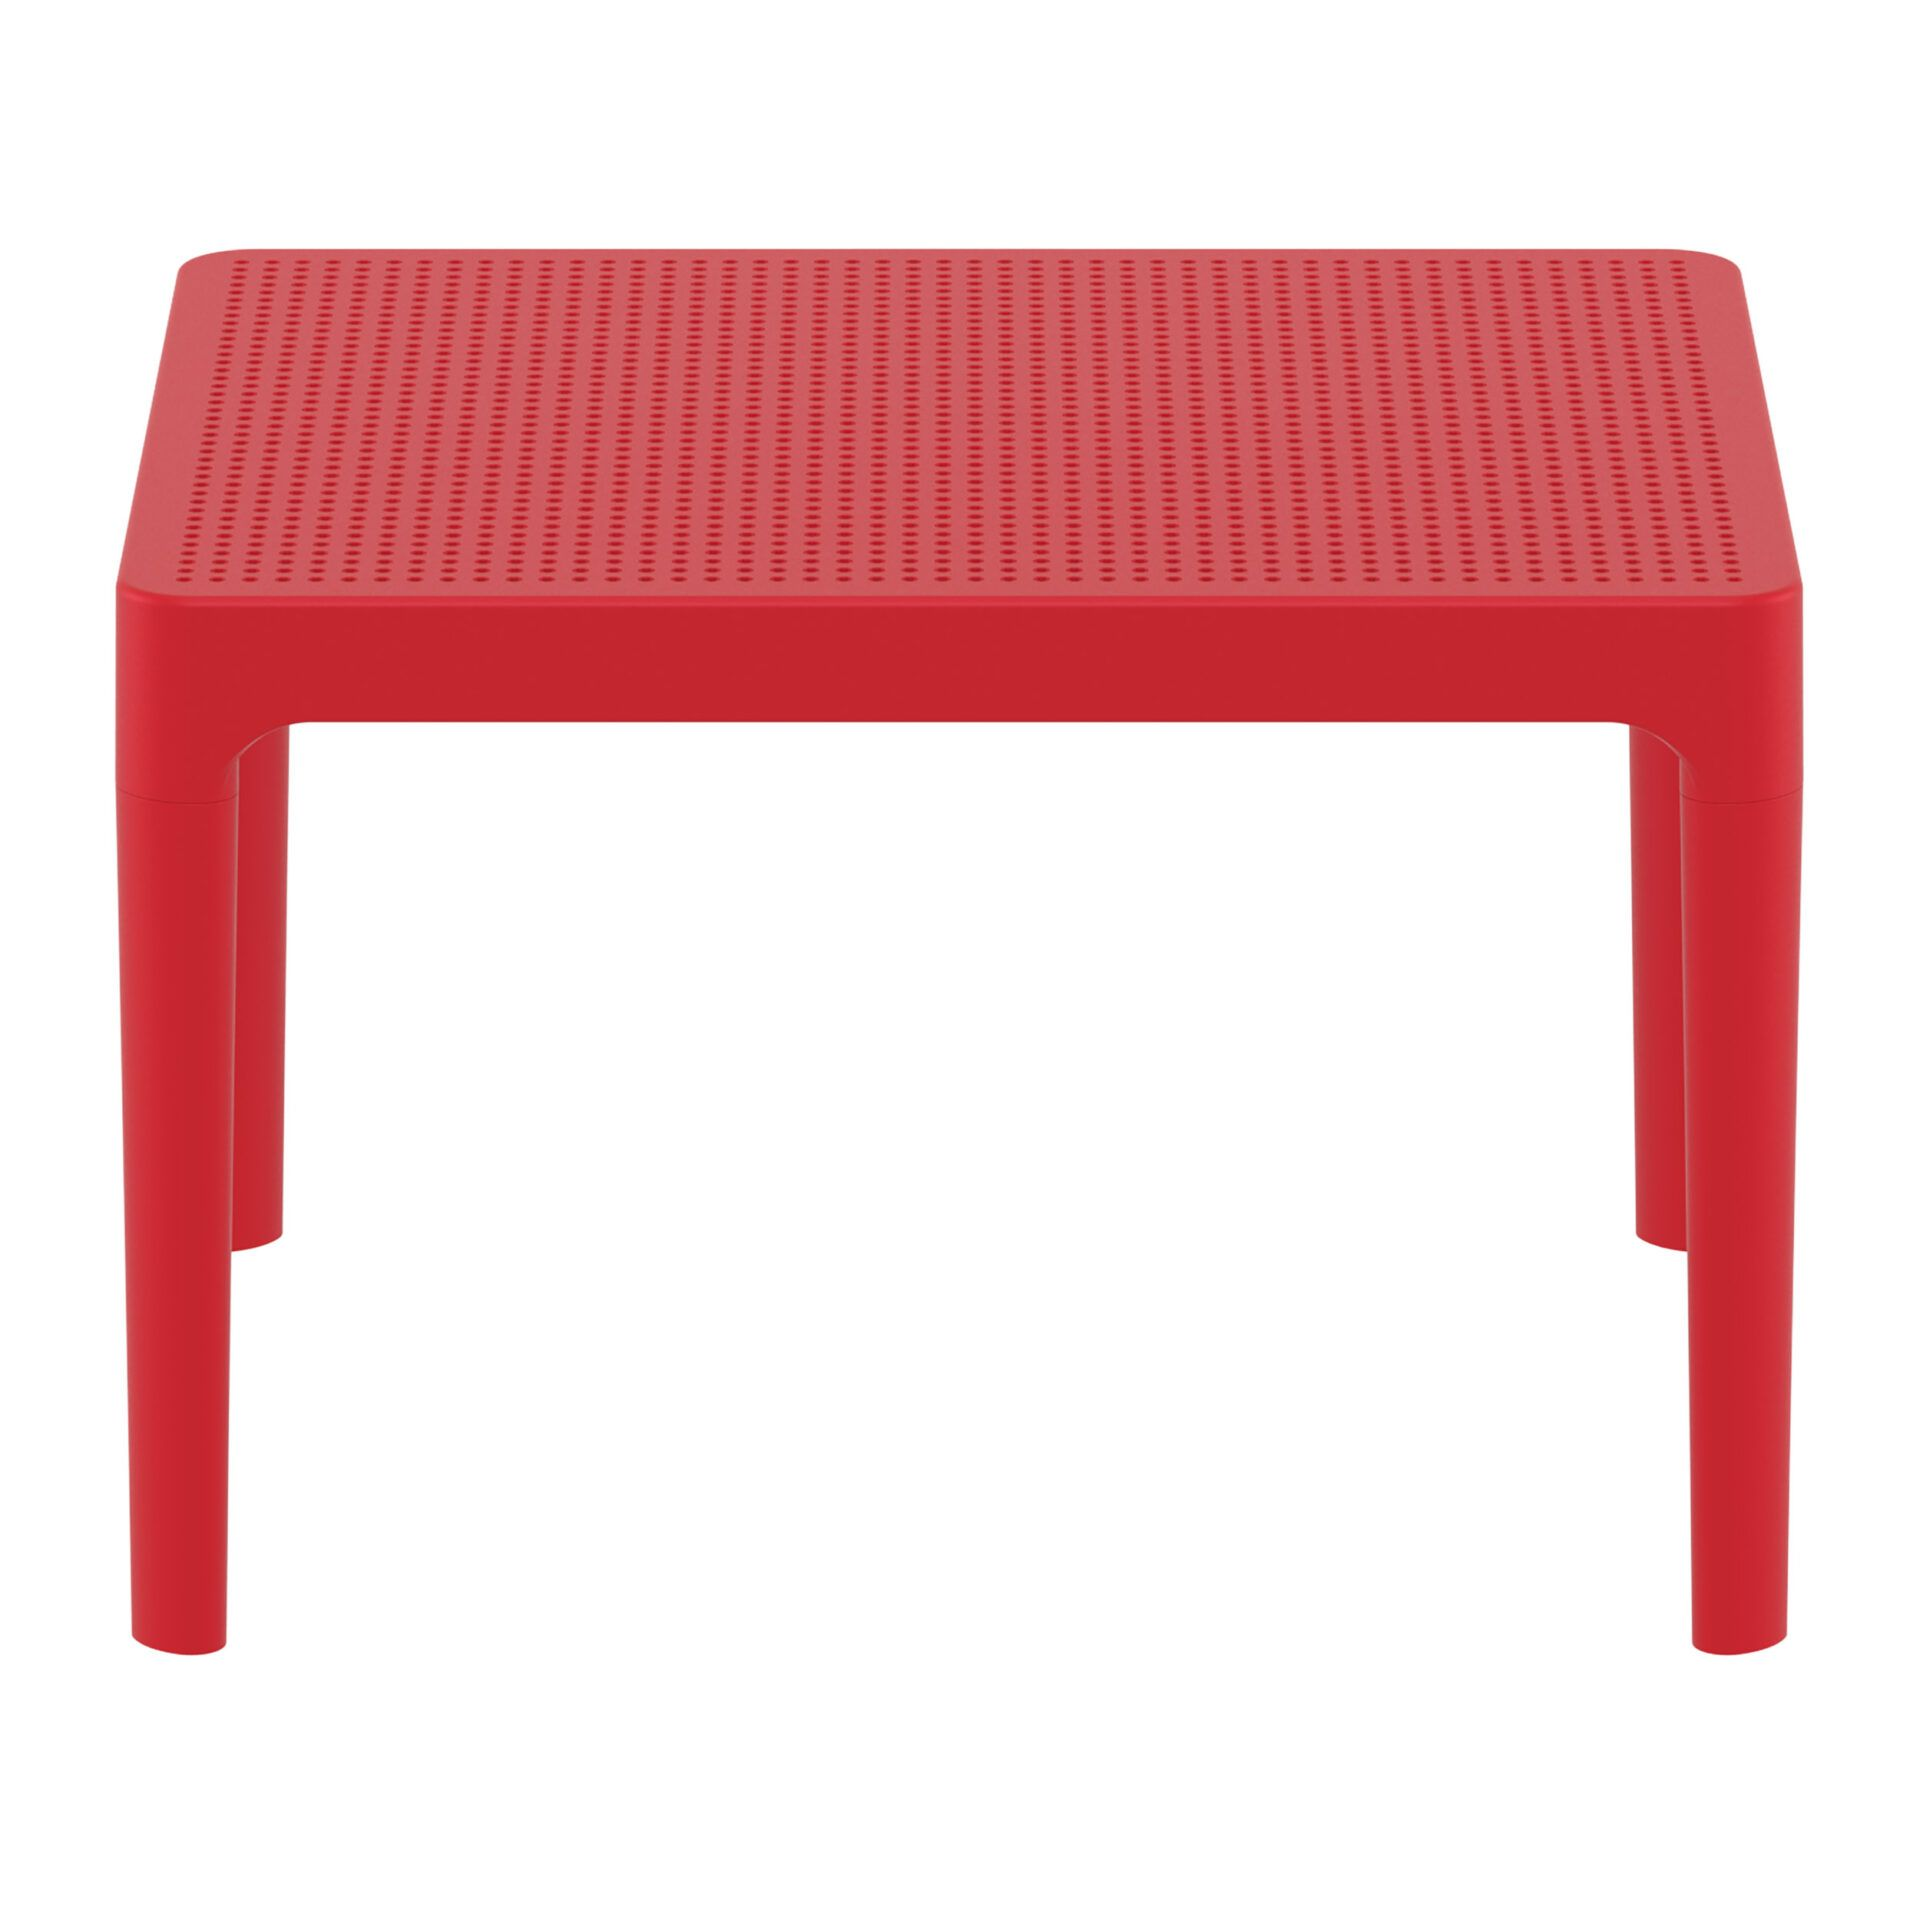 polypropylene outdoor sky side table red long edge